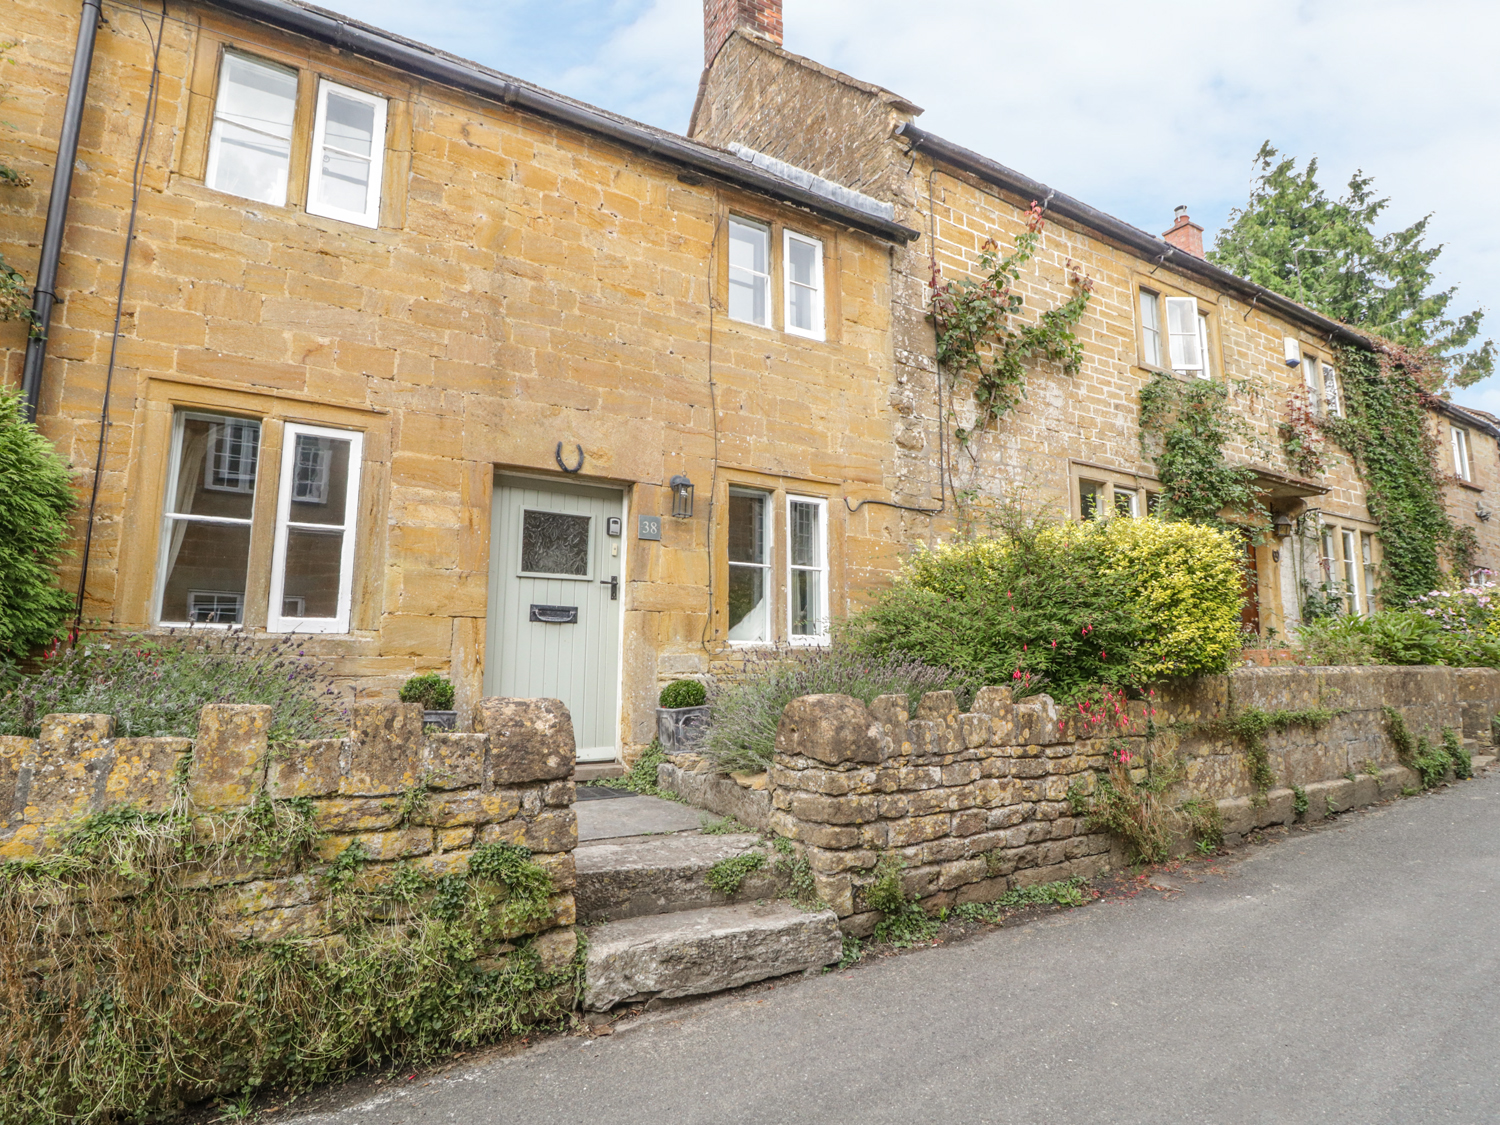 2 bedroom Cottage for rent in Yeovil